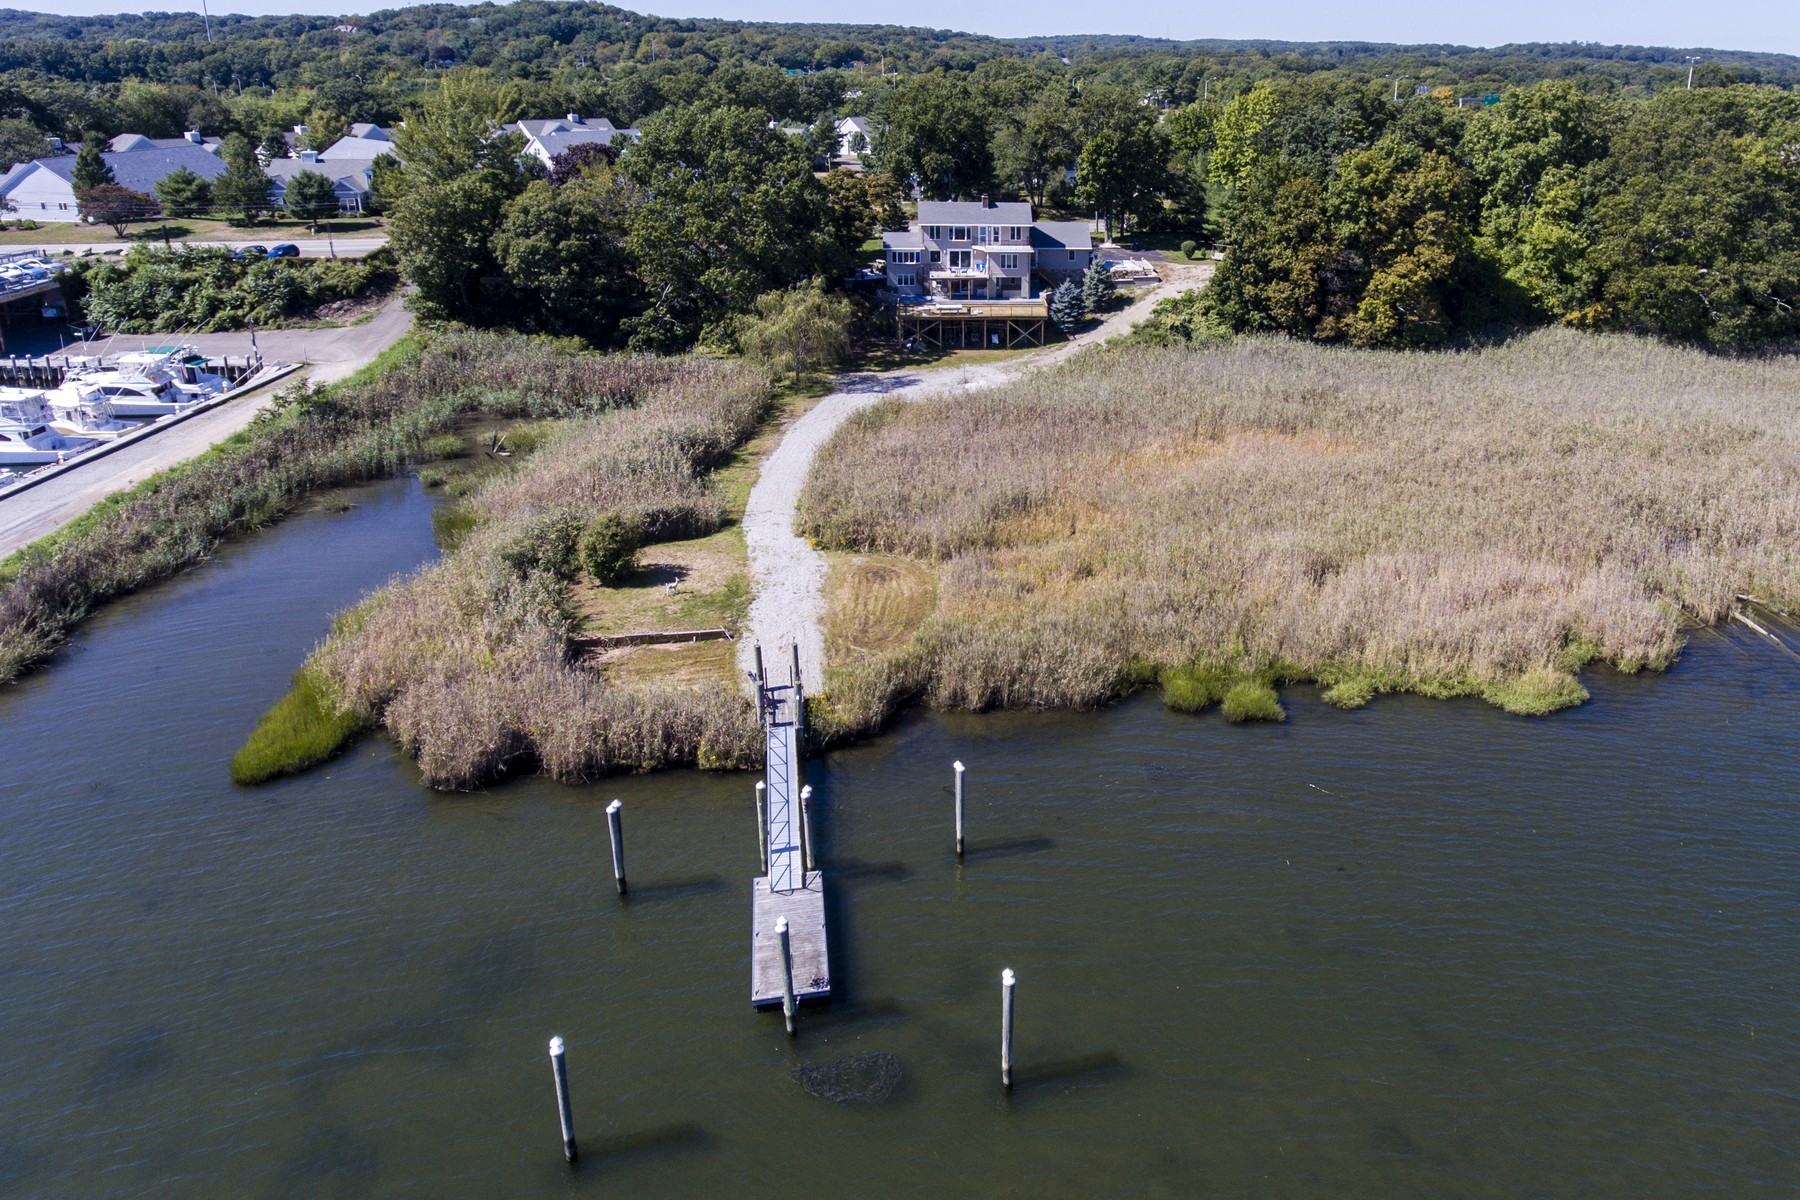 Moradia para Venda às Waterfront Property With Breathtaking Views 180 Ferry Road Old Saybrook, Connecticut, 06475 Estados Unidos